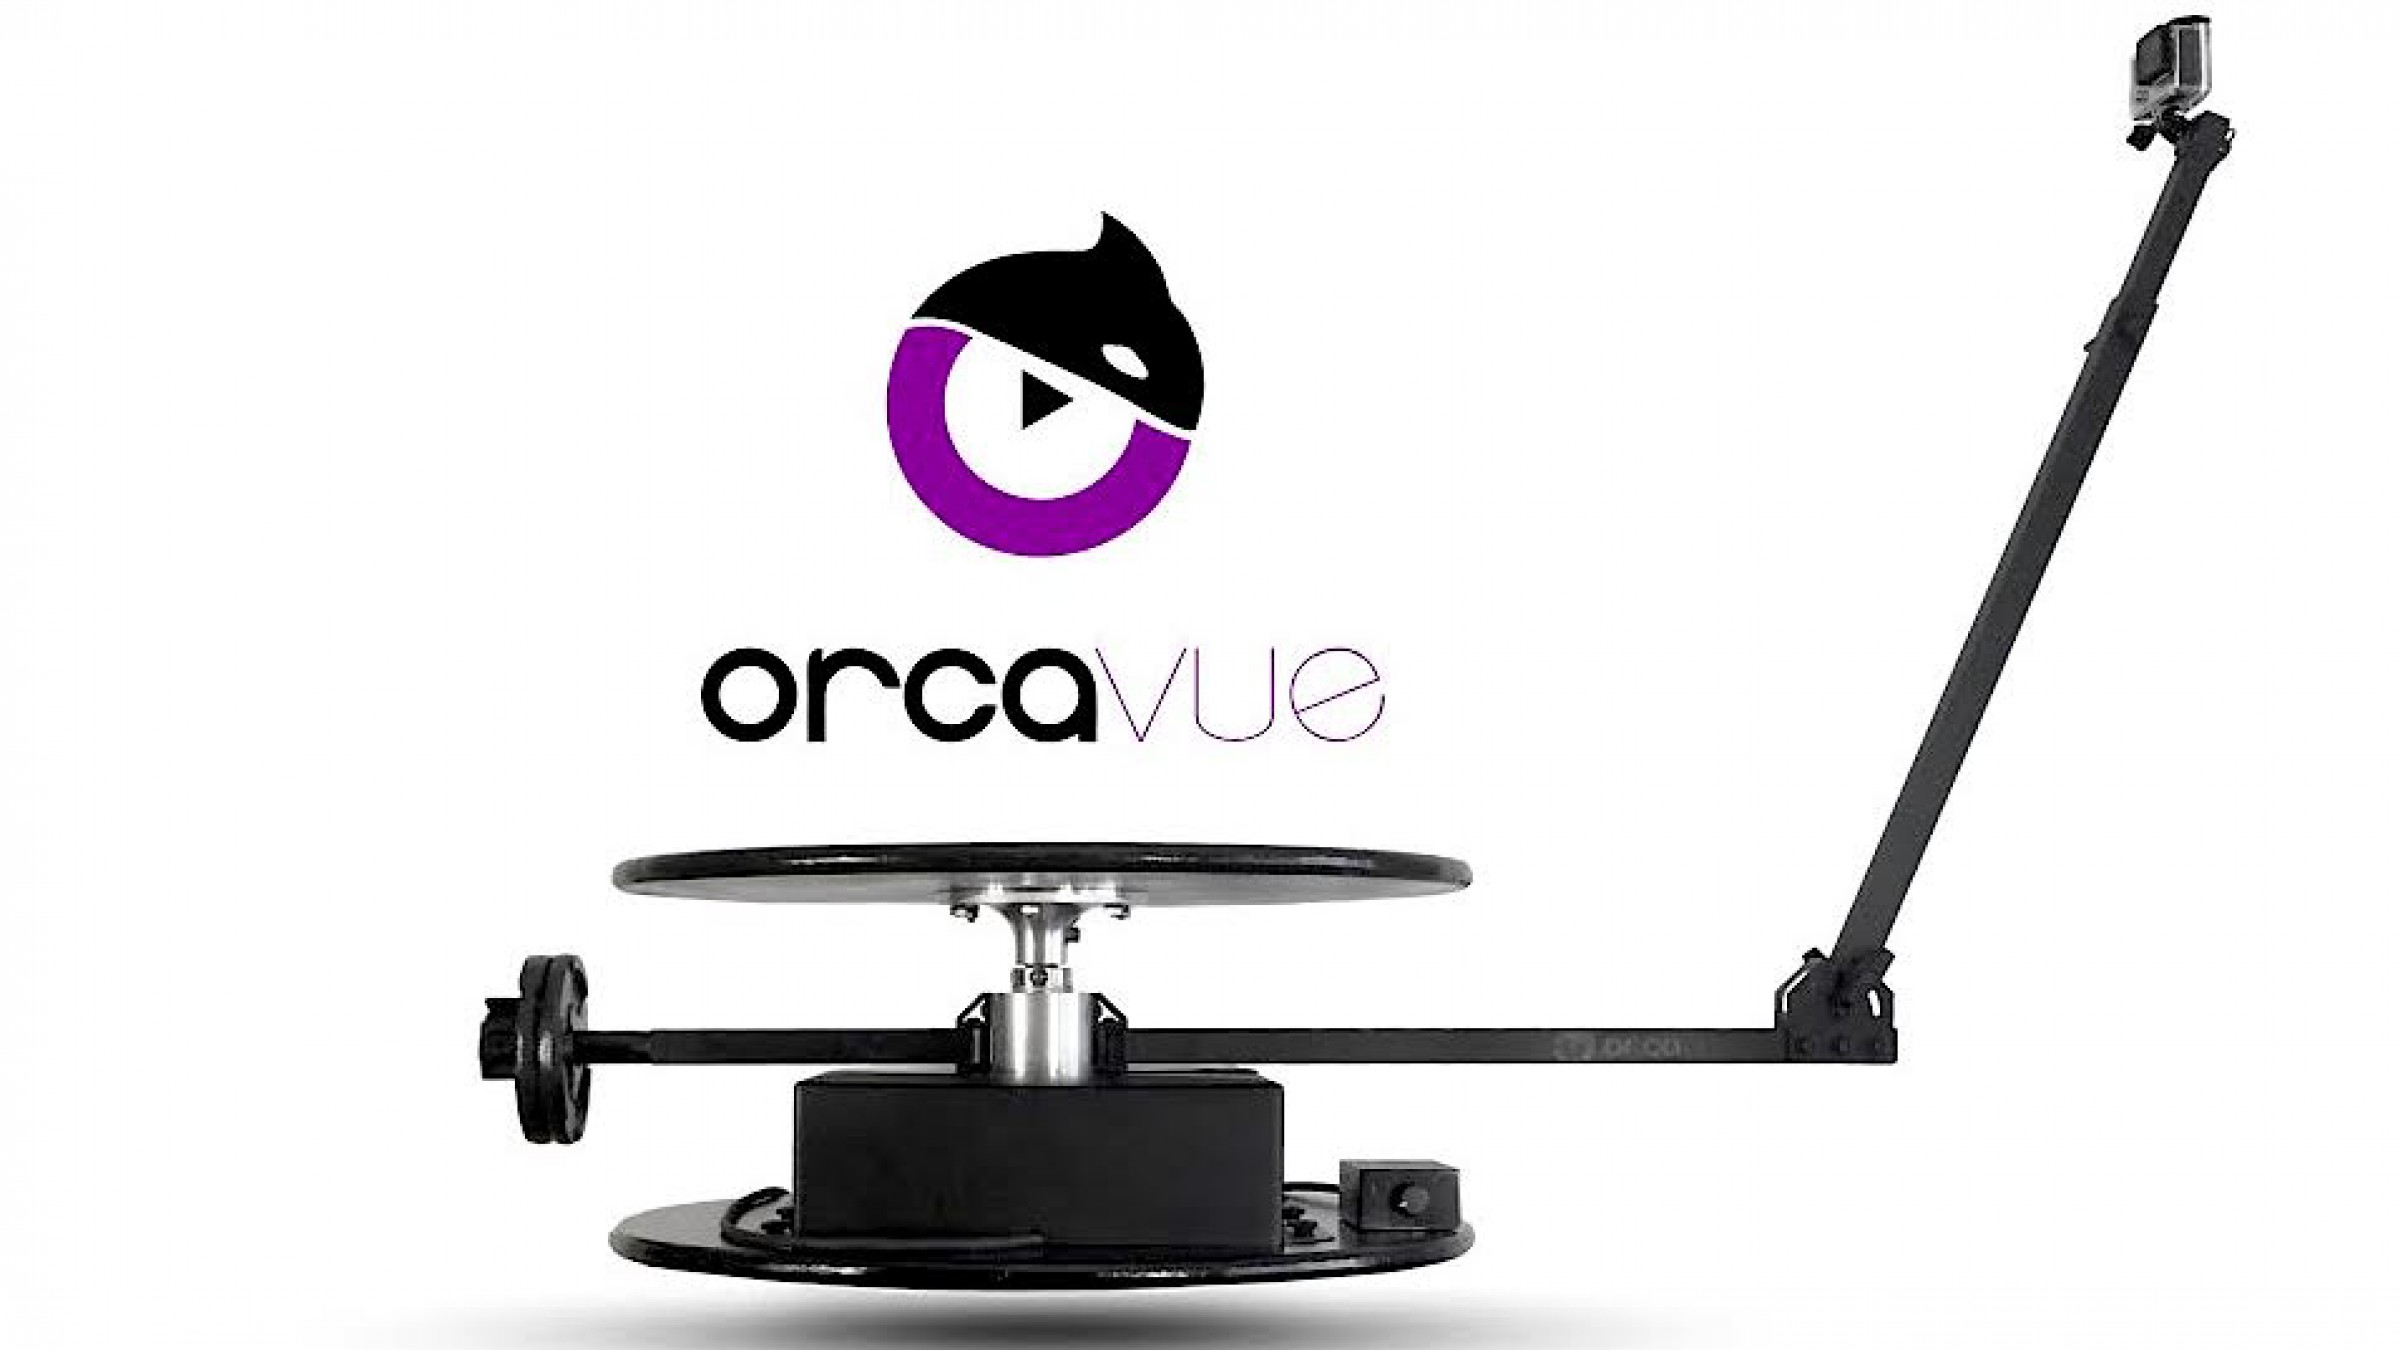 This Nifty Rig Is Bringing Badass 360 Degree Slow Motion Shots to the Masses